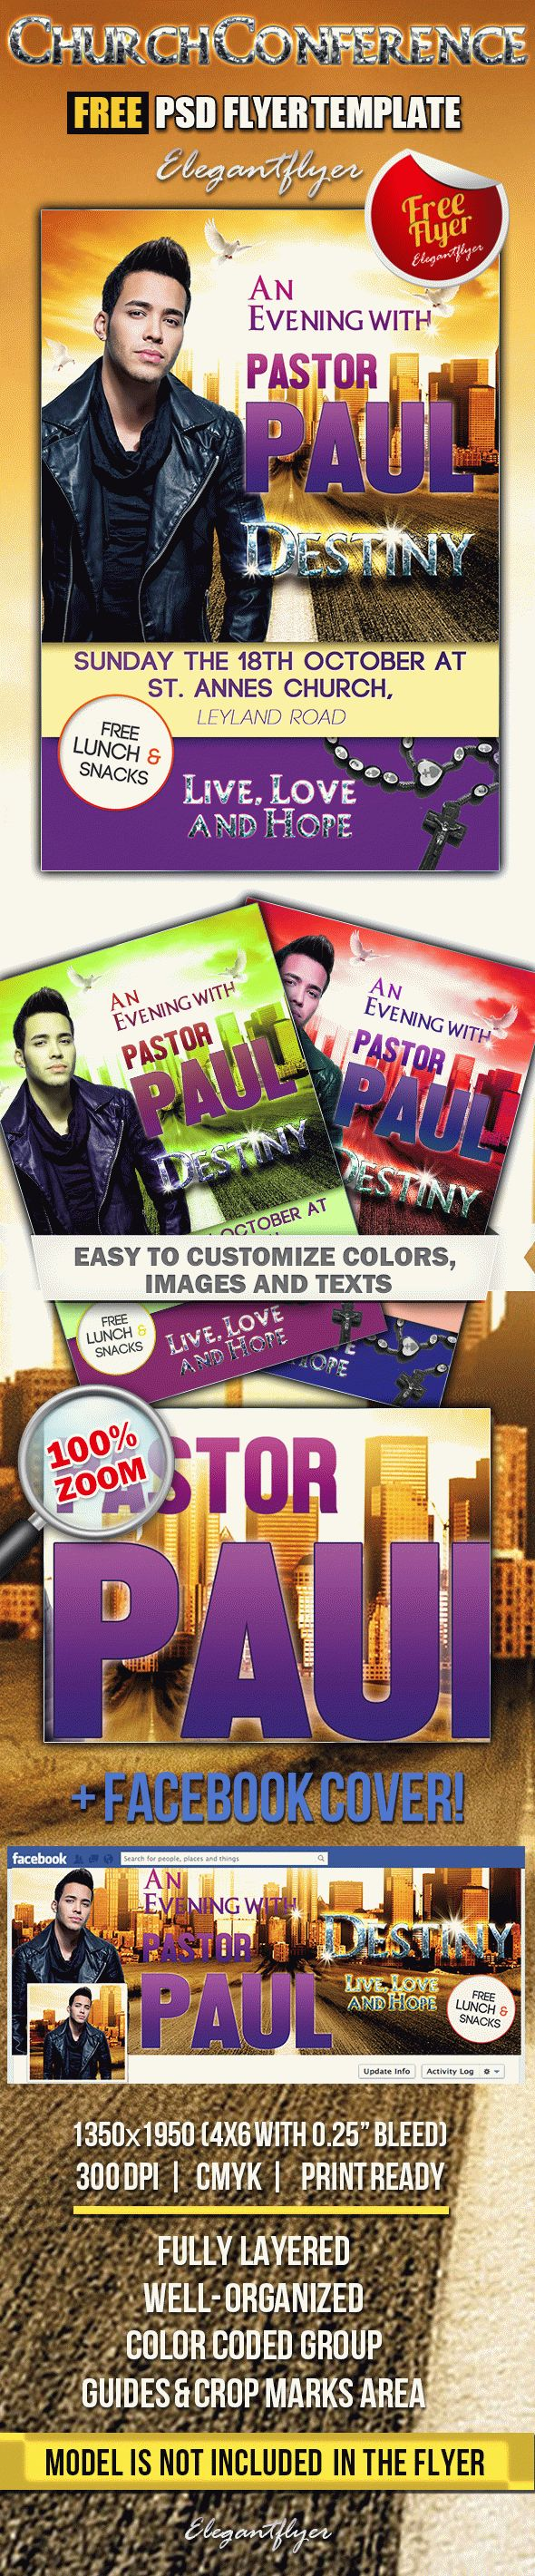 Church Conference Free Flyer PSD Template Facebook Cover by – Conference Flyer Template